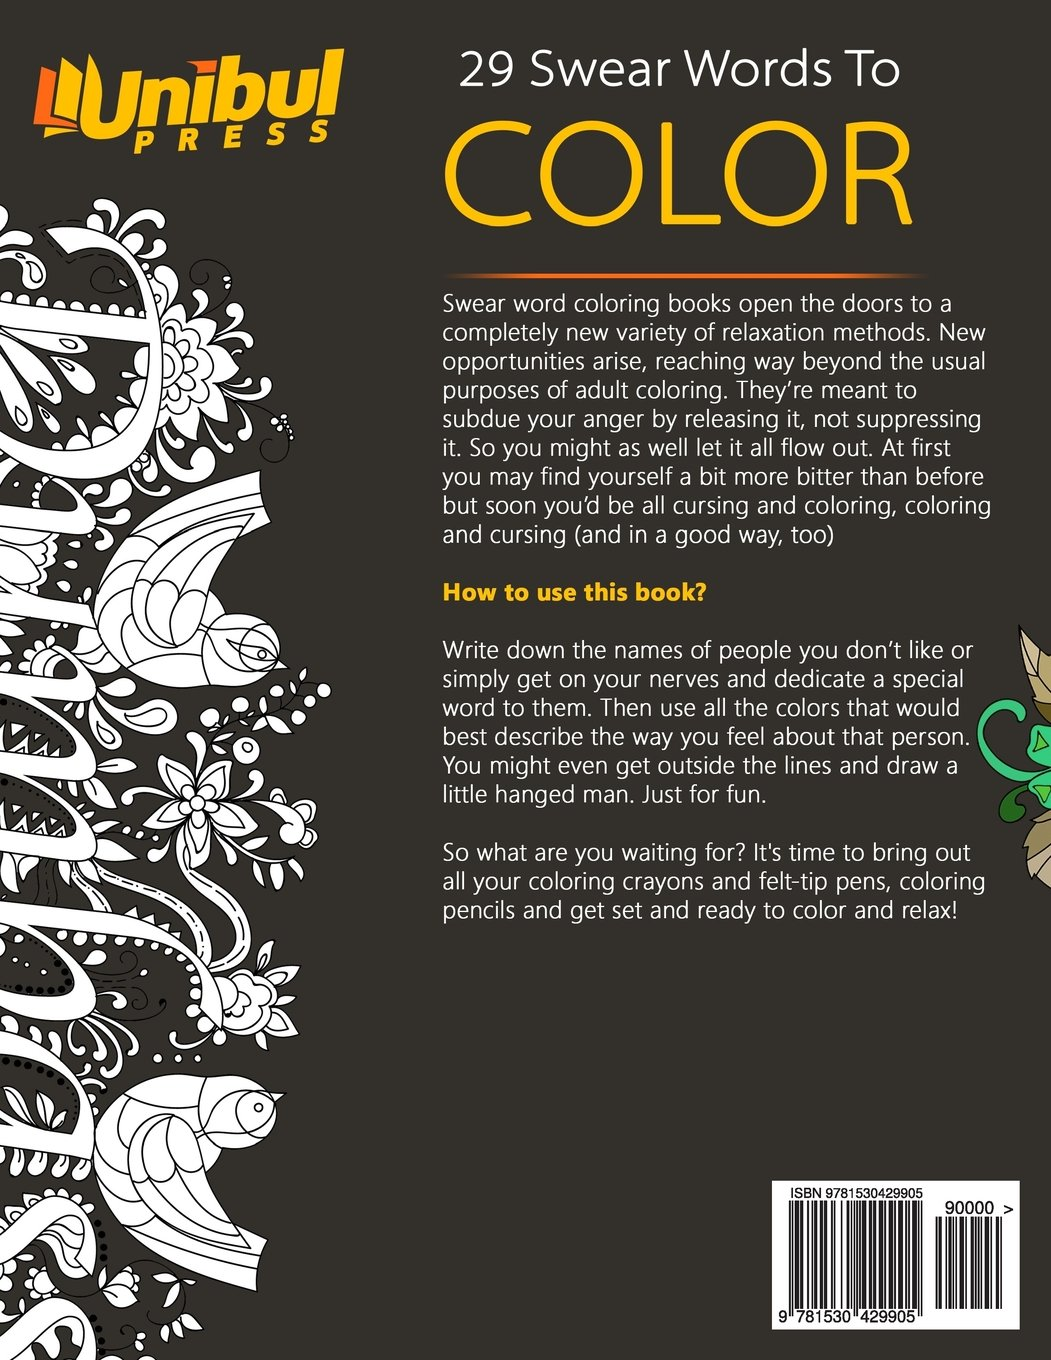 Fancy swear words coloring book - Amazon Com Swear Word Adult Coloring Book Stress Relief Coloring Book With Sweary Words Animals And Flowers Unibul Press Coloring Books Volume 2